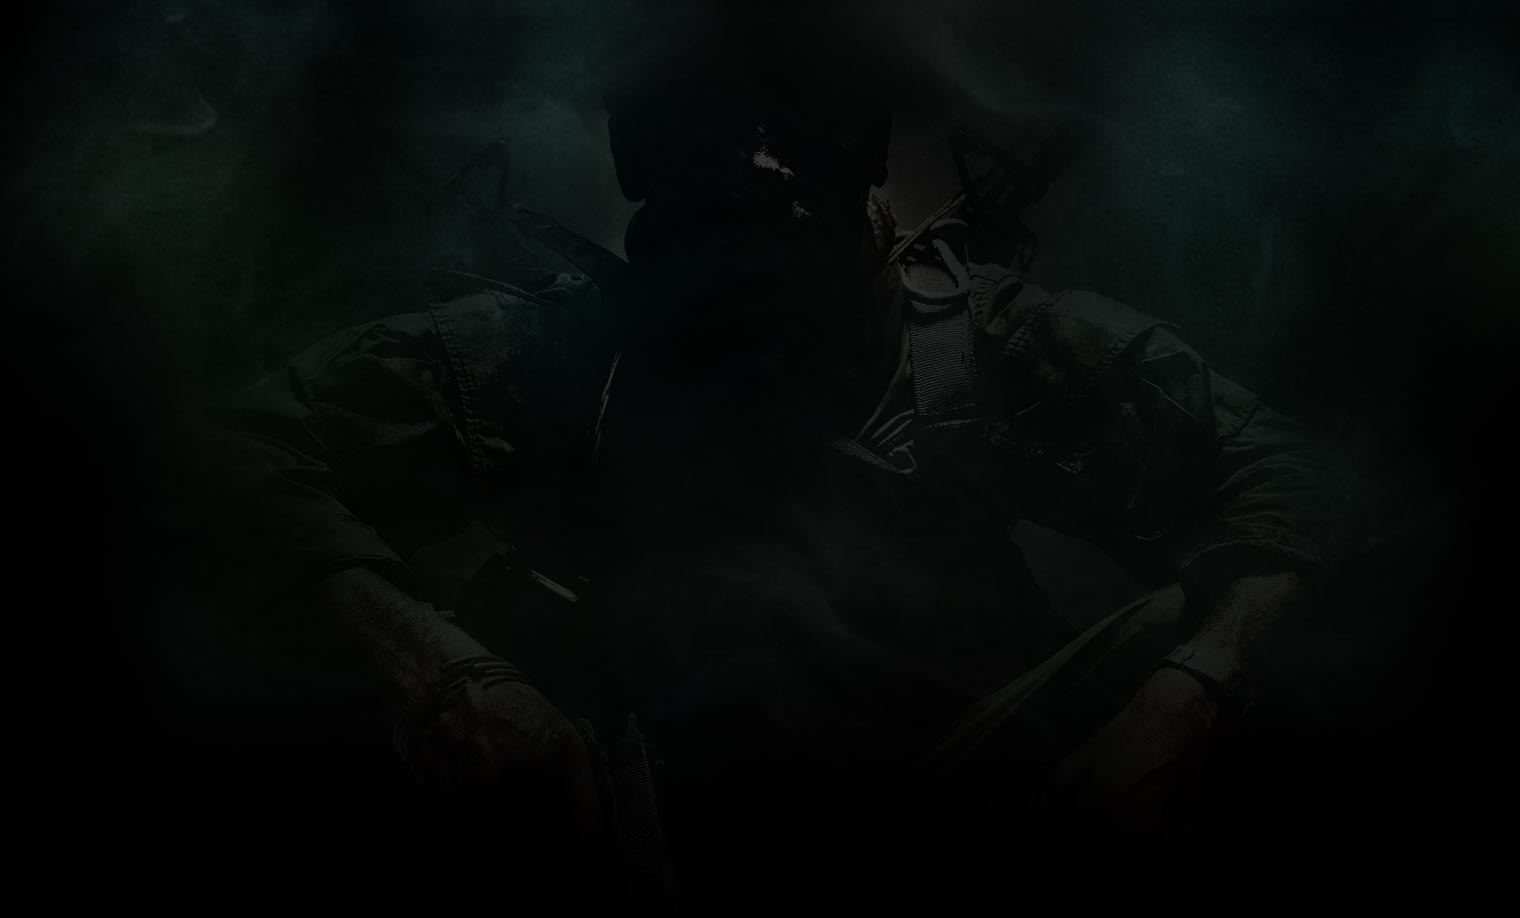 Call Of Duty: Black Ops Backgrounds - Wallpaper Cave